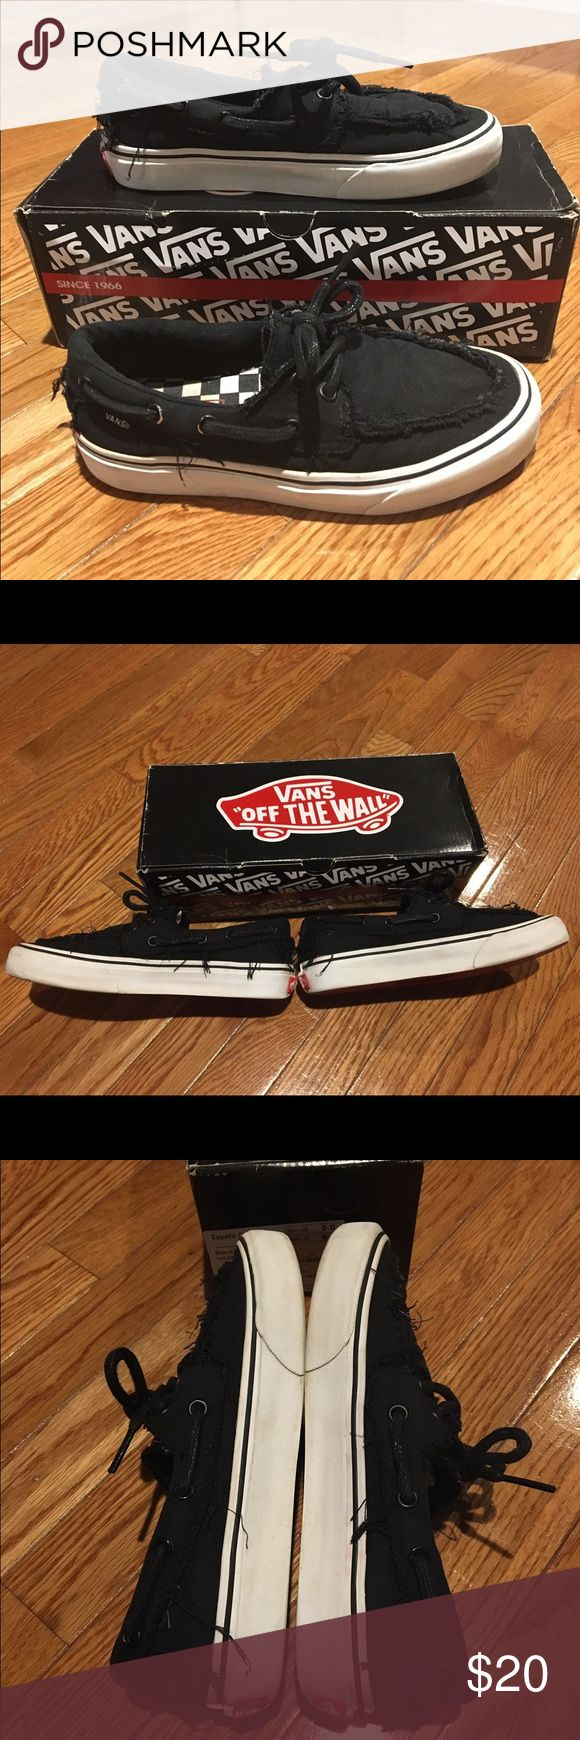 Vans Zapato Del Barco Black 6.5 Vans Zapato Del Barco in Black, women's size 6.5. Previously worn. Comes with original box. Vans Shoes Sneakers